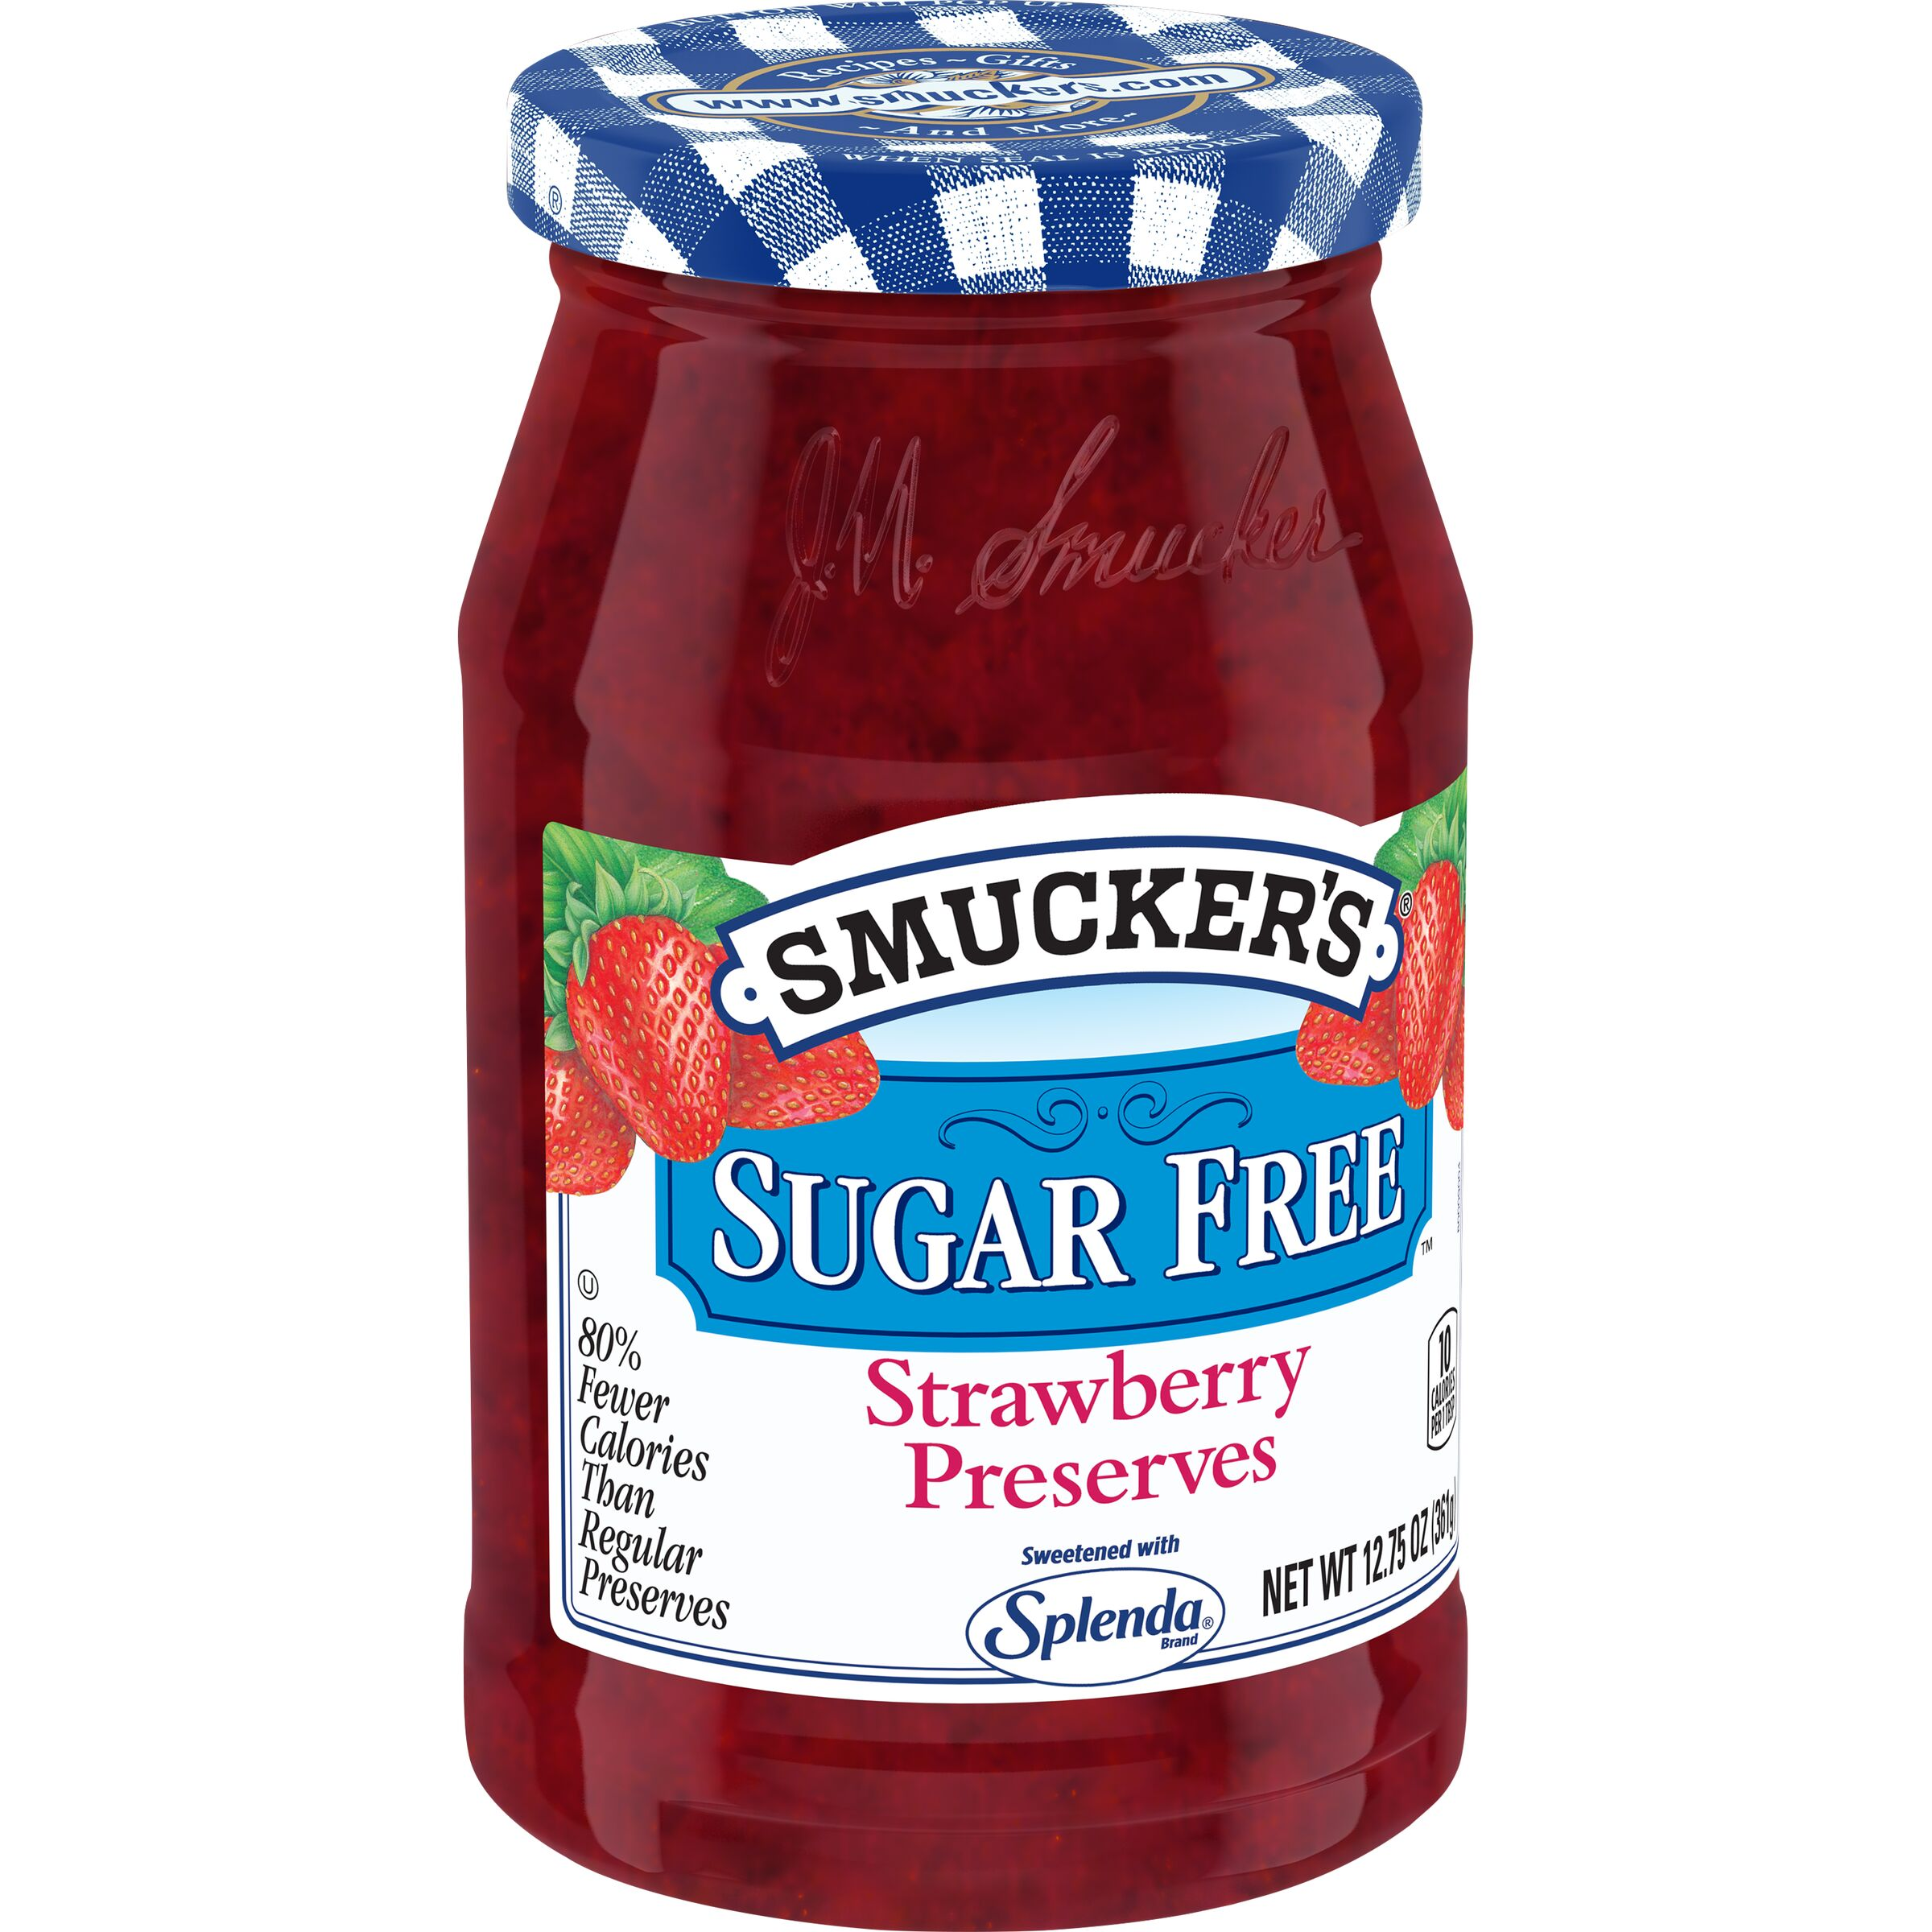 Smucker's SUGAR FREE Strawberry Preserves with Splenda Brand Sweetener